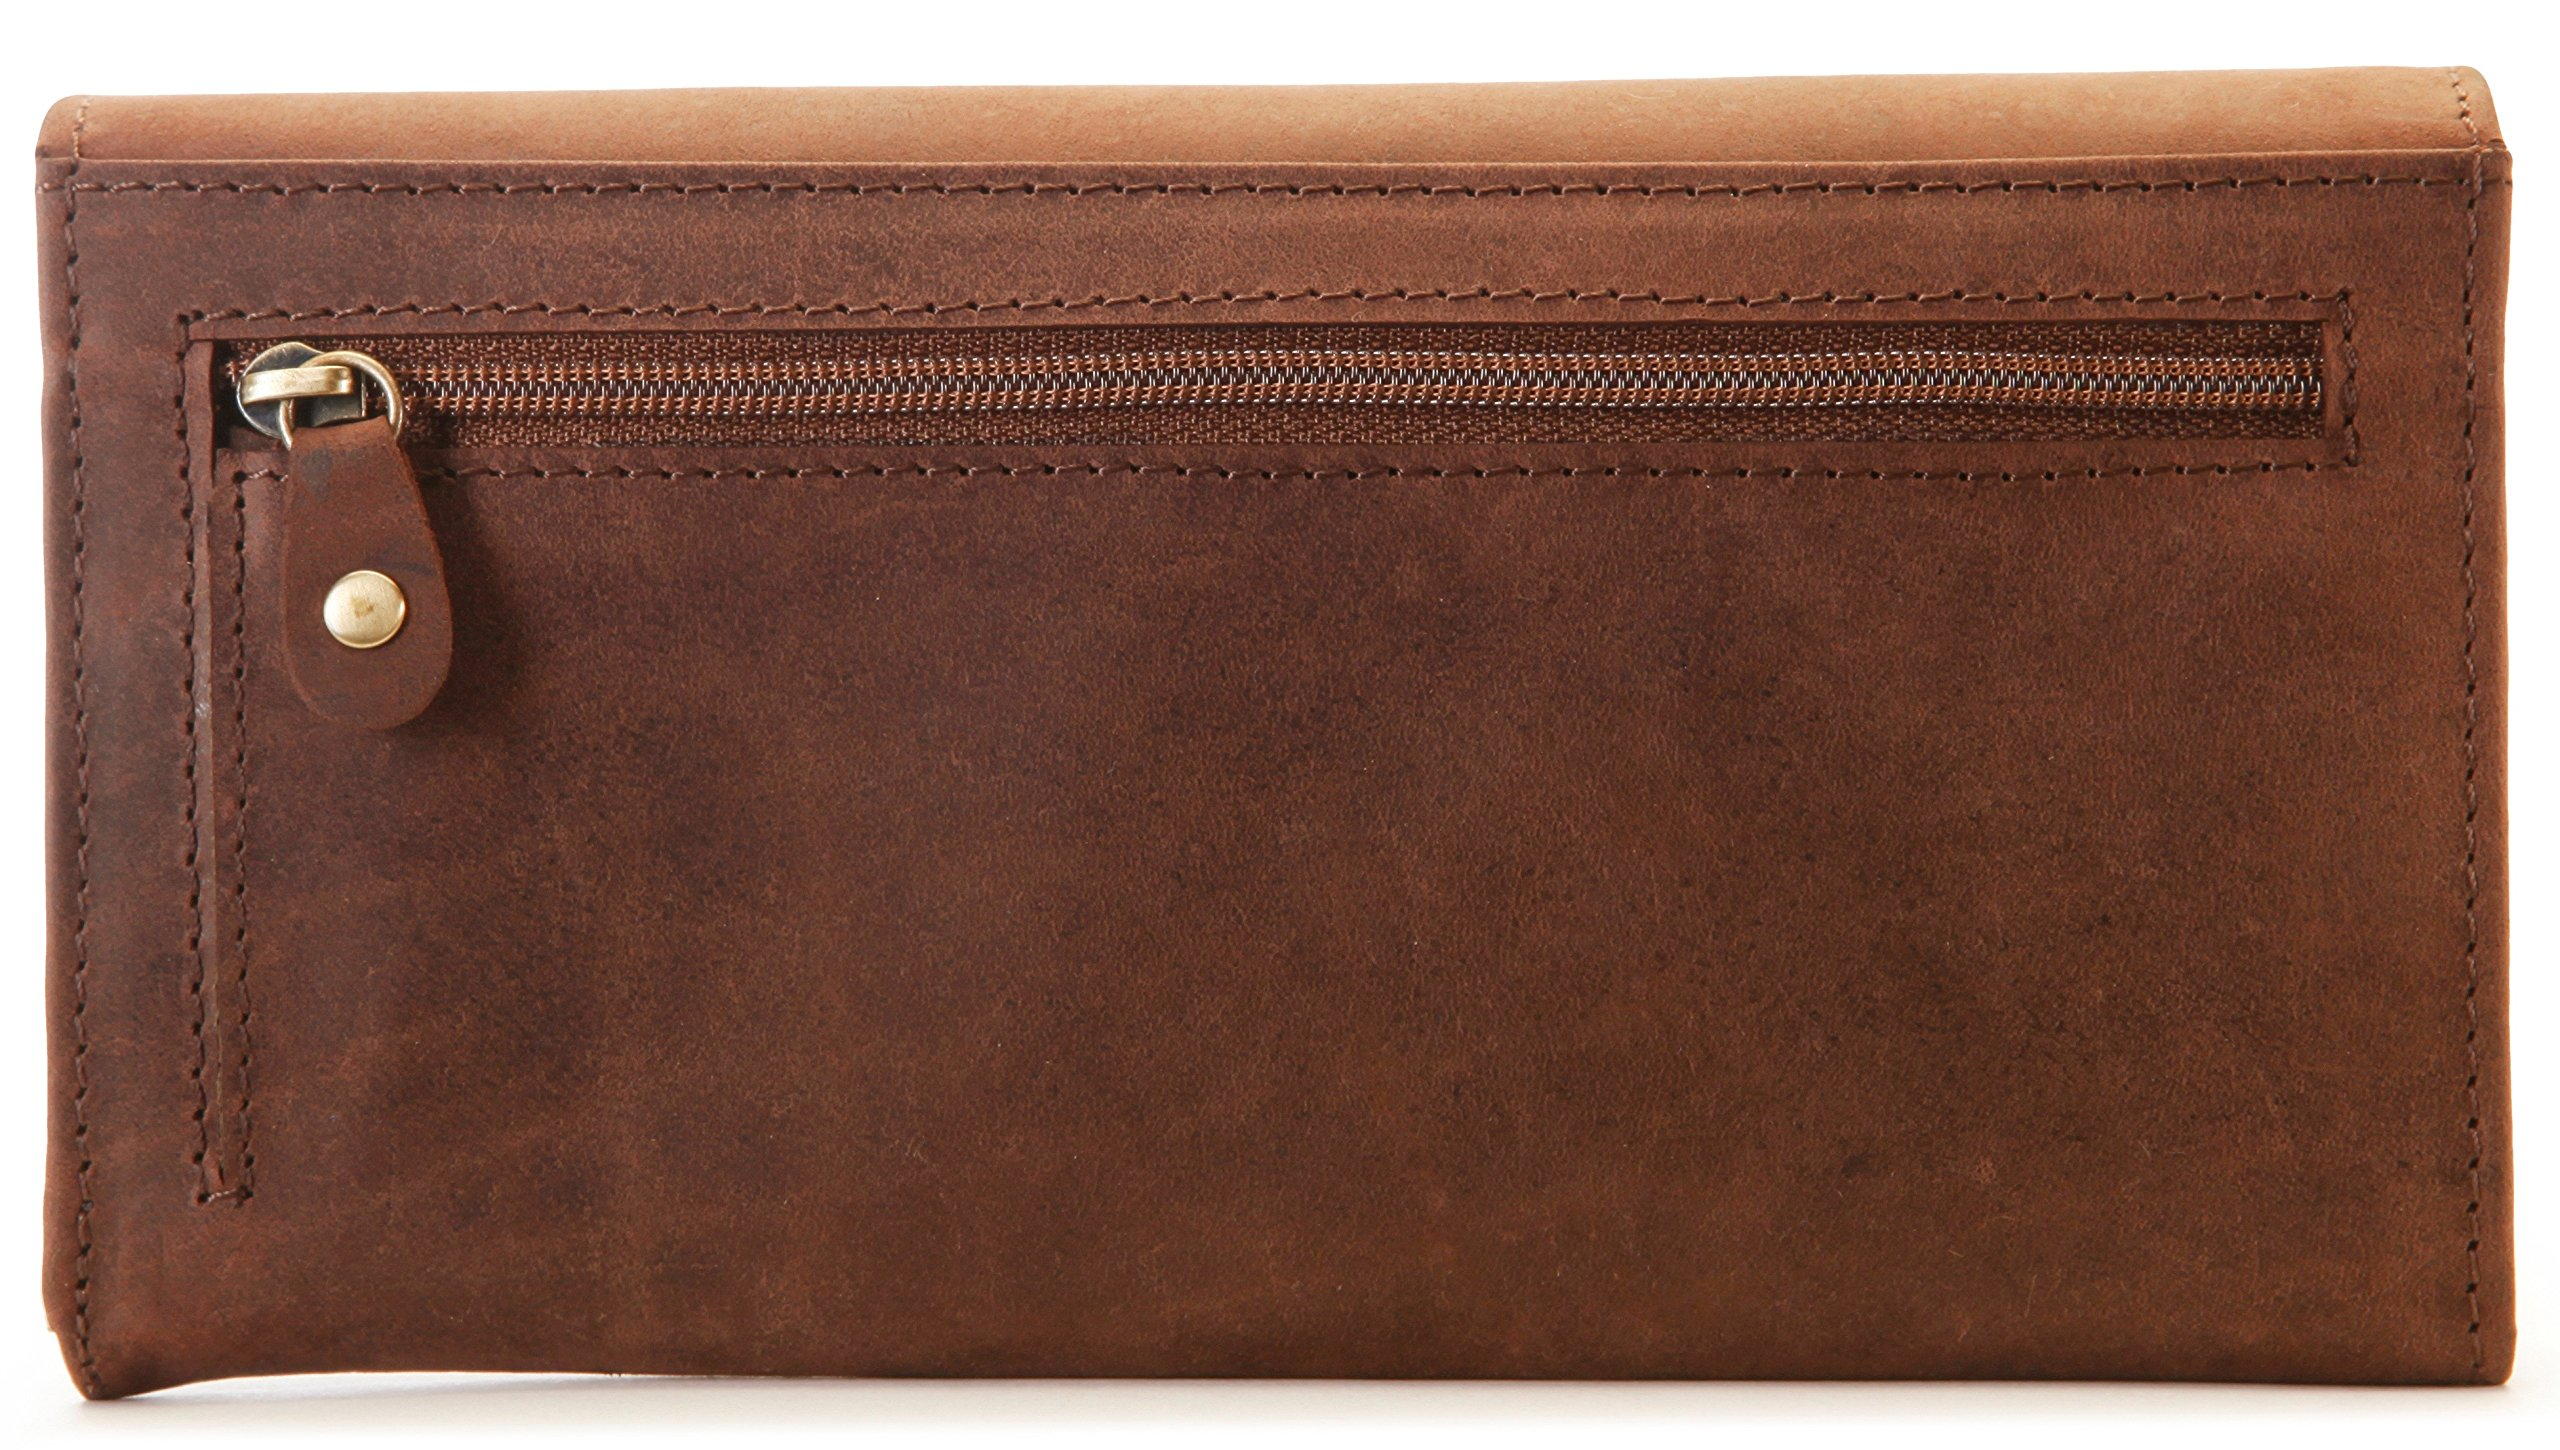 LEABAGS Charlotte genuine buffalo leather women's wallet in vintage style - Nutmeg by LEABAGS (Image #3)